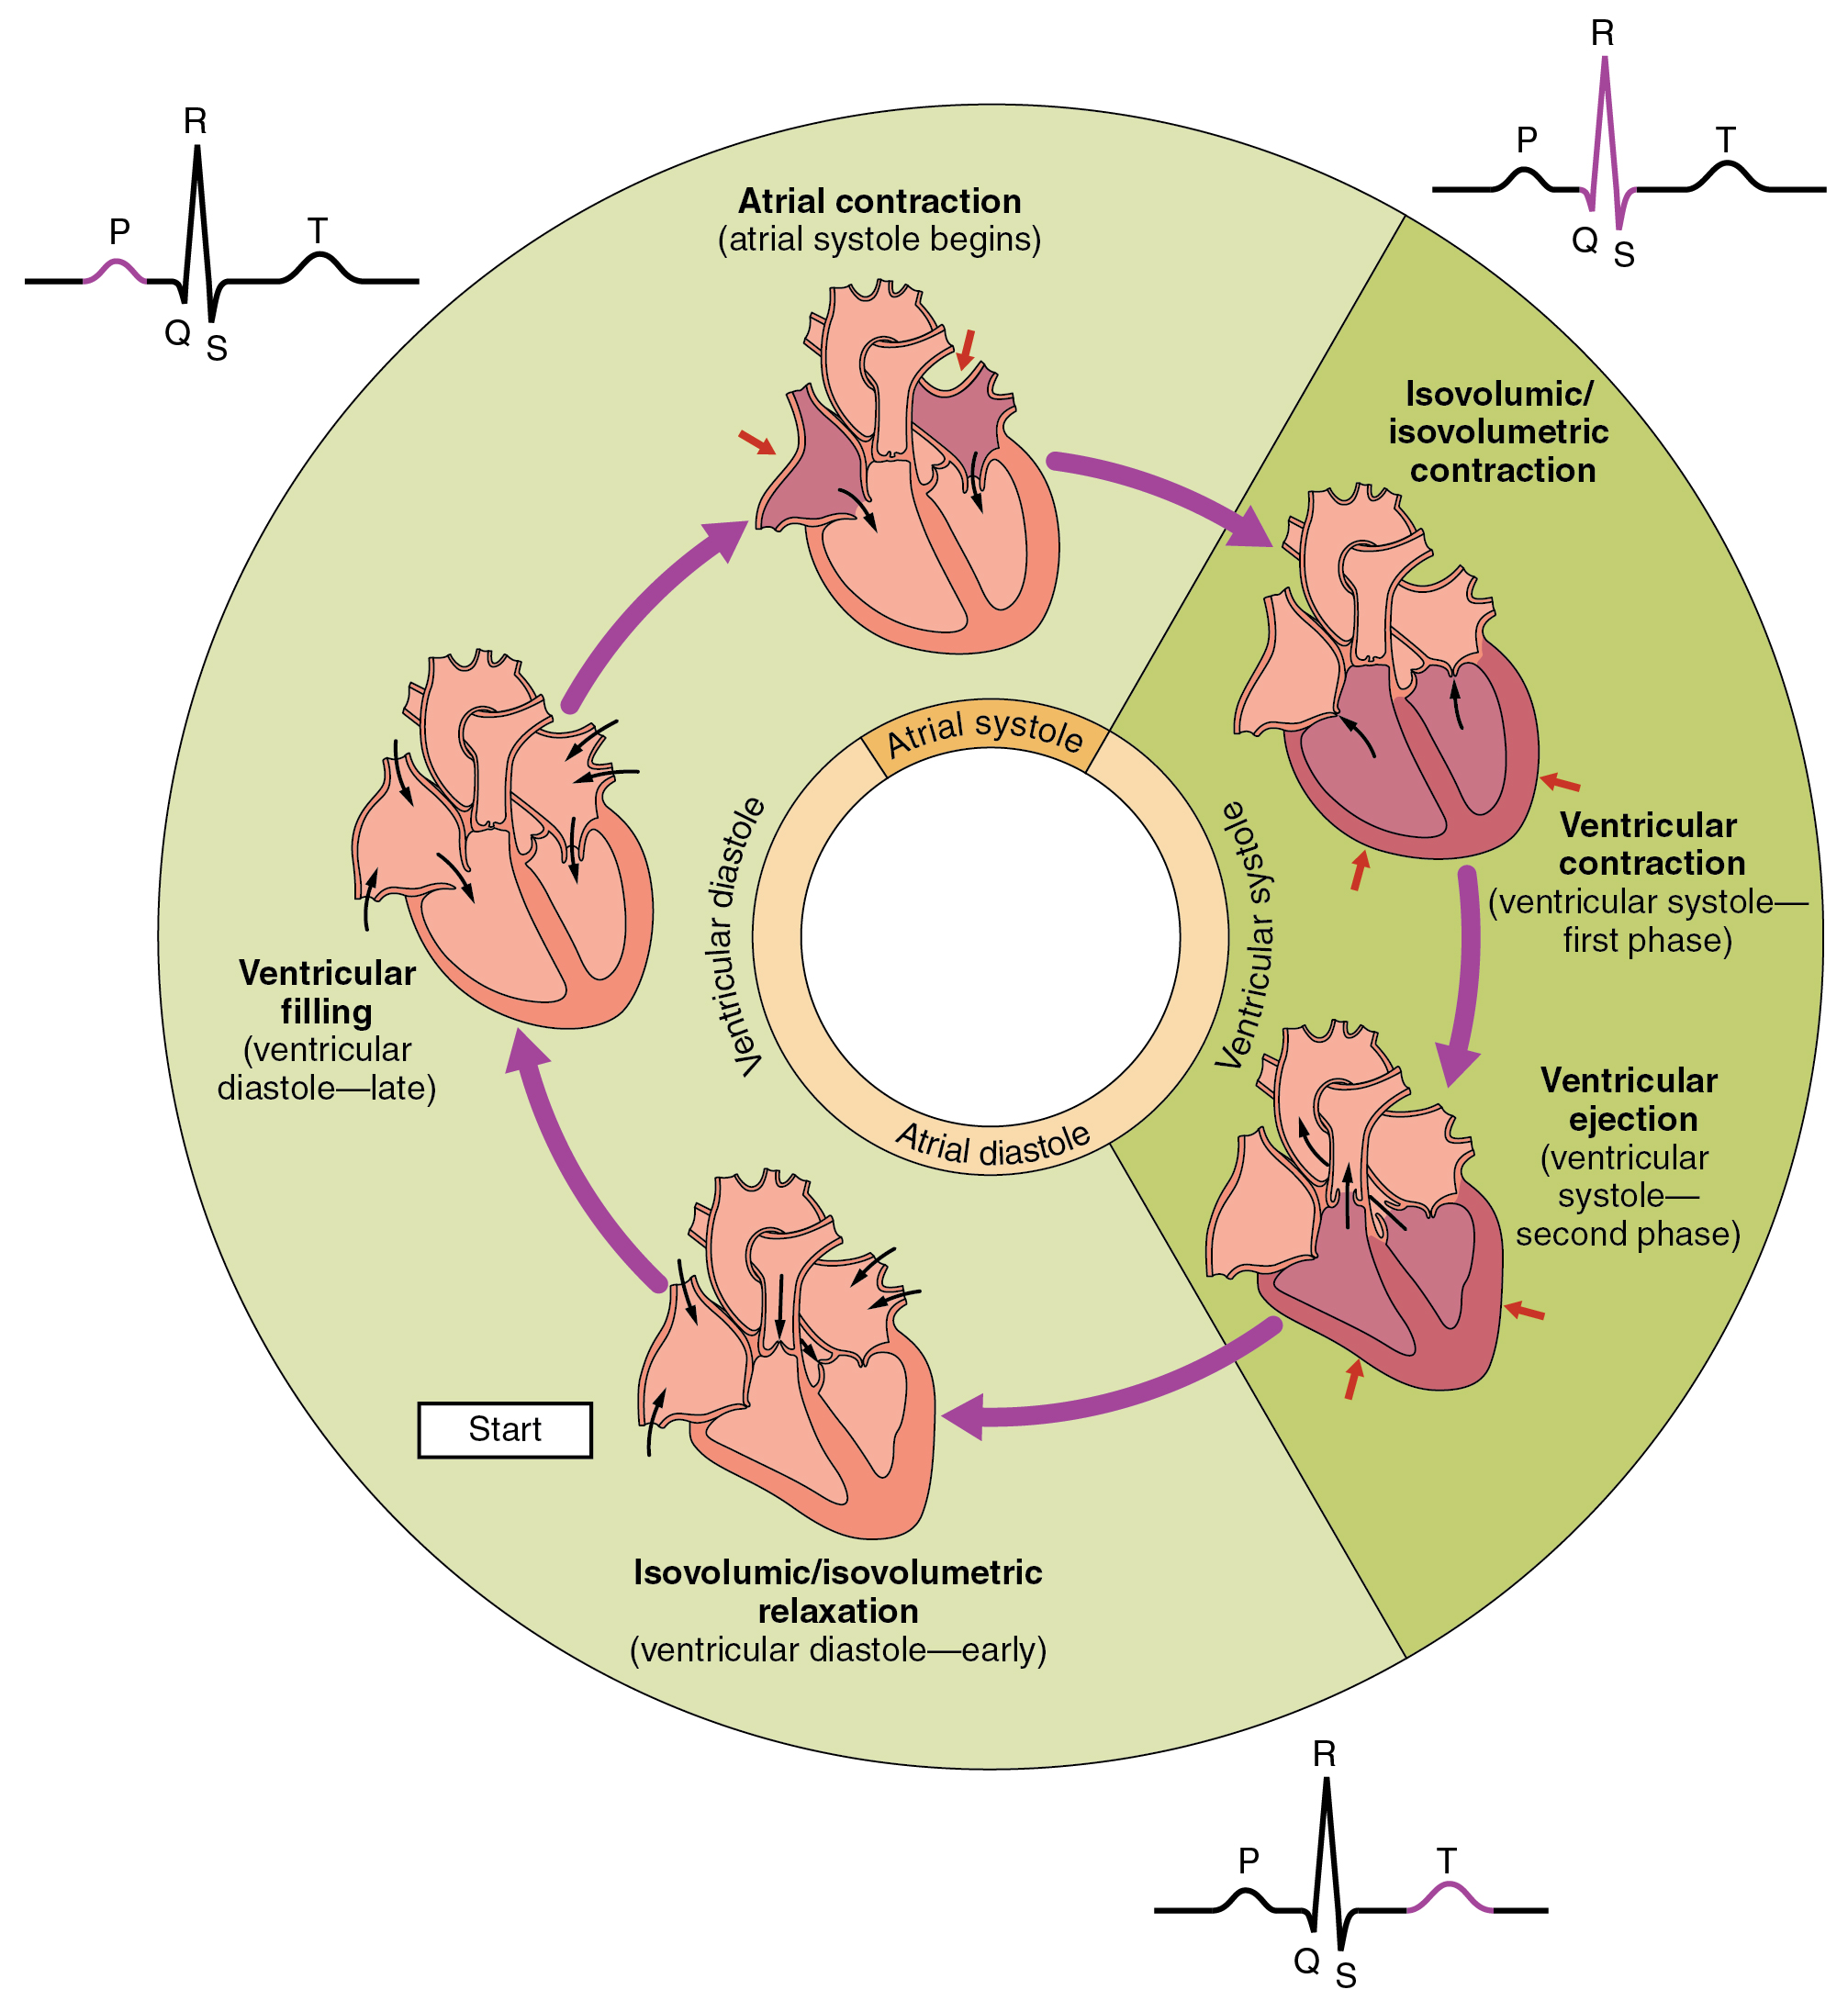 Phases of the cardiac cycle, from Openstax College